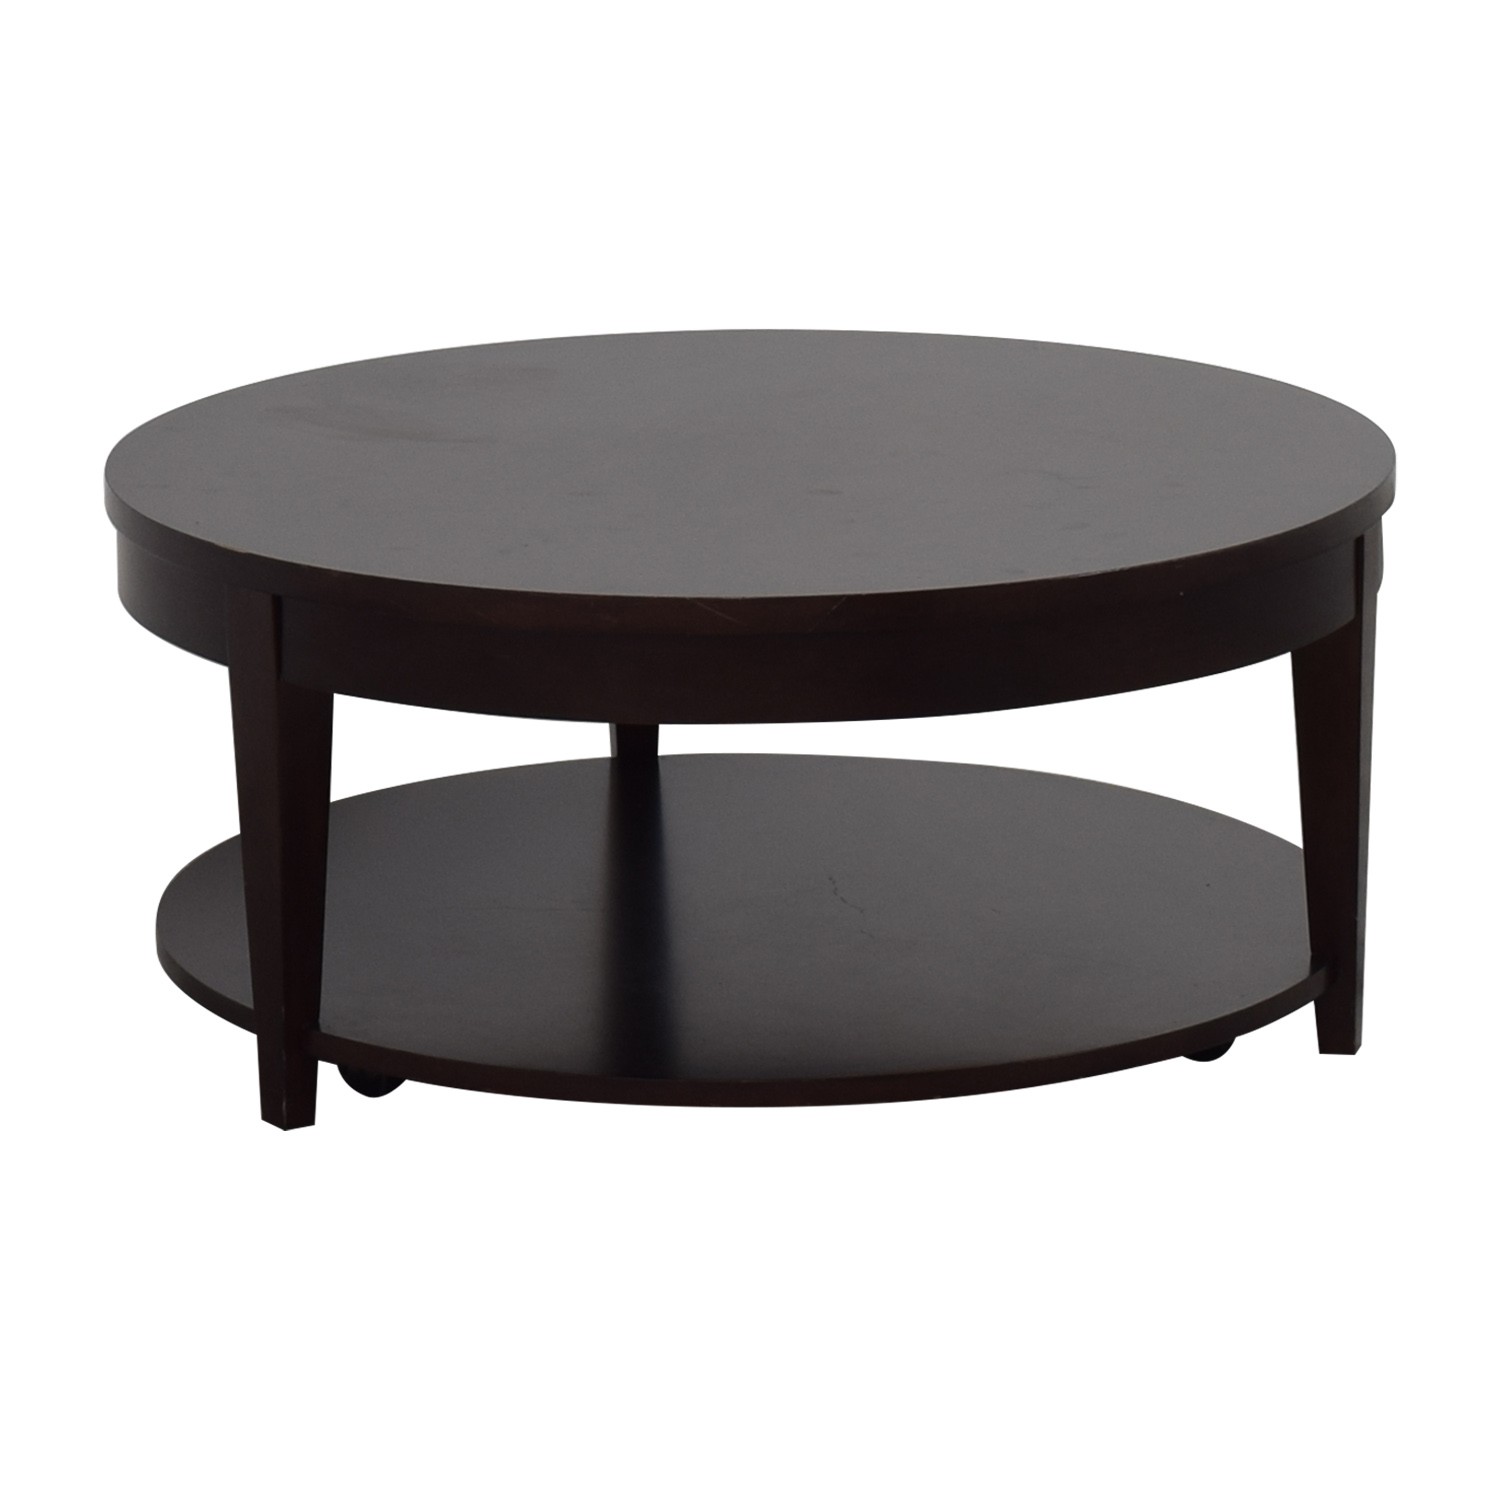 87 Off Macy 39 S Macy 39 S Modern Rolling Round Coffee Table Tables